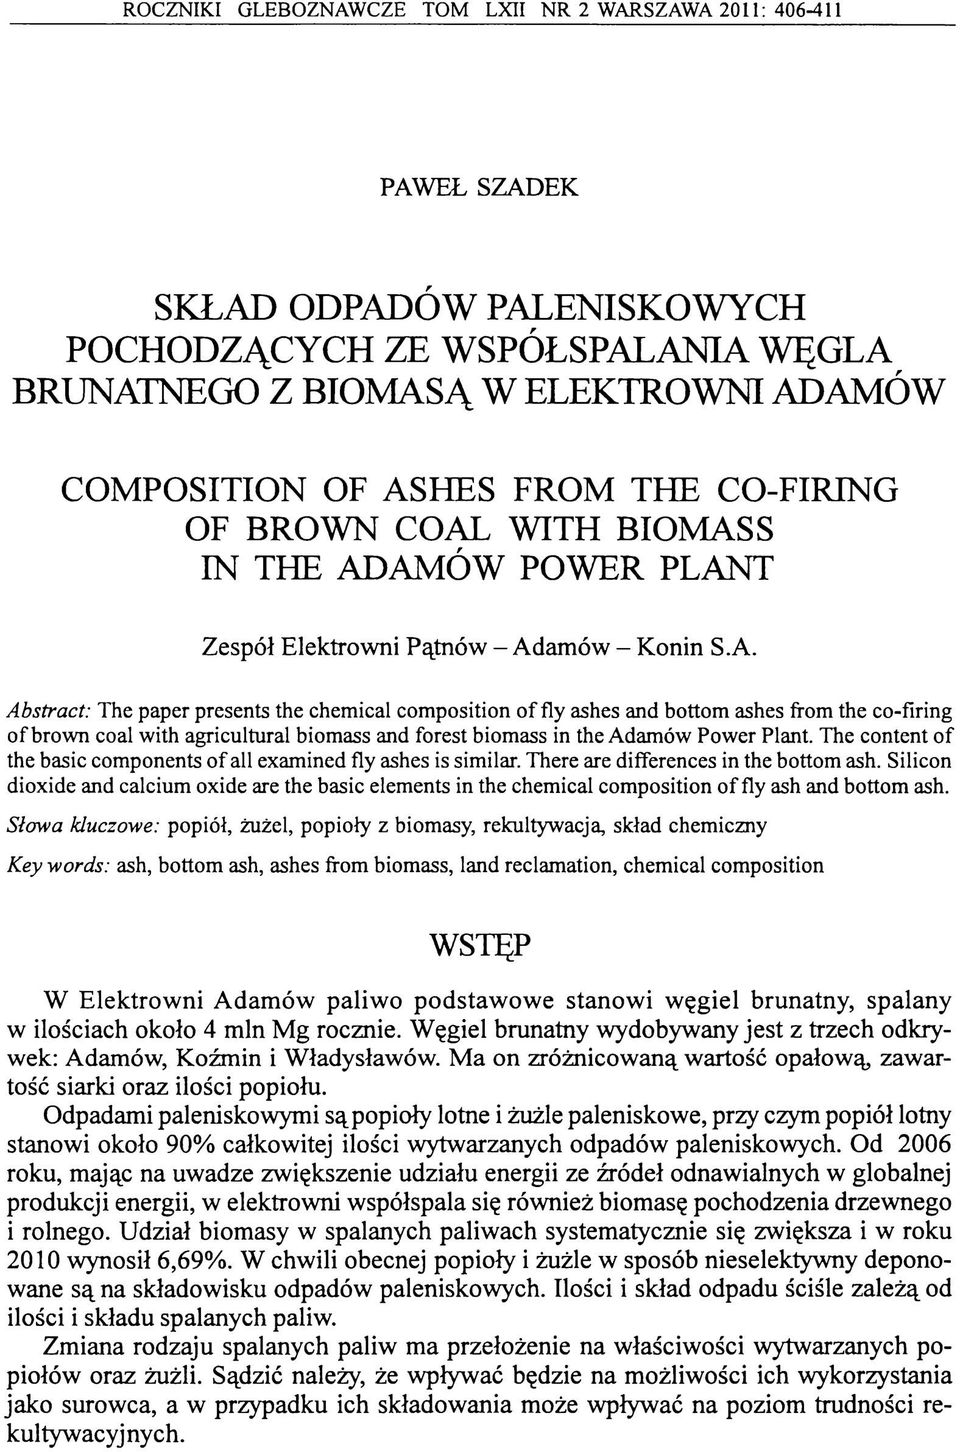 WITH BIOMASS IN THE ADAMÓW POWER PLANT Zespół Elektrowni Pątnów - Adamów - Konin S.A. Abstract: The paper presents the chemical com position o f es and es from the co-firing o f brown coal with agricultural biomass and forest biomass in the Adamów Power Plant.